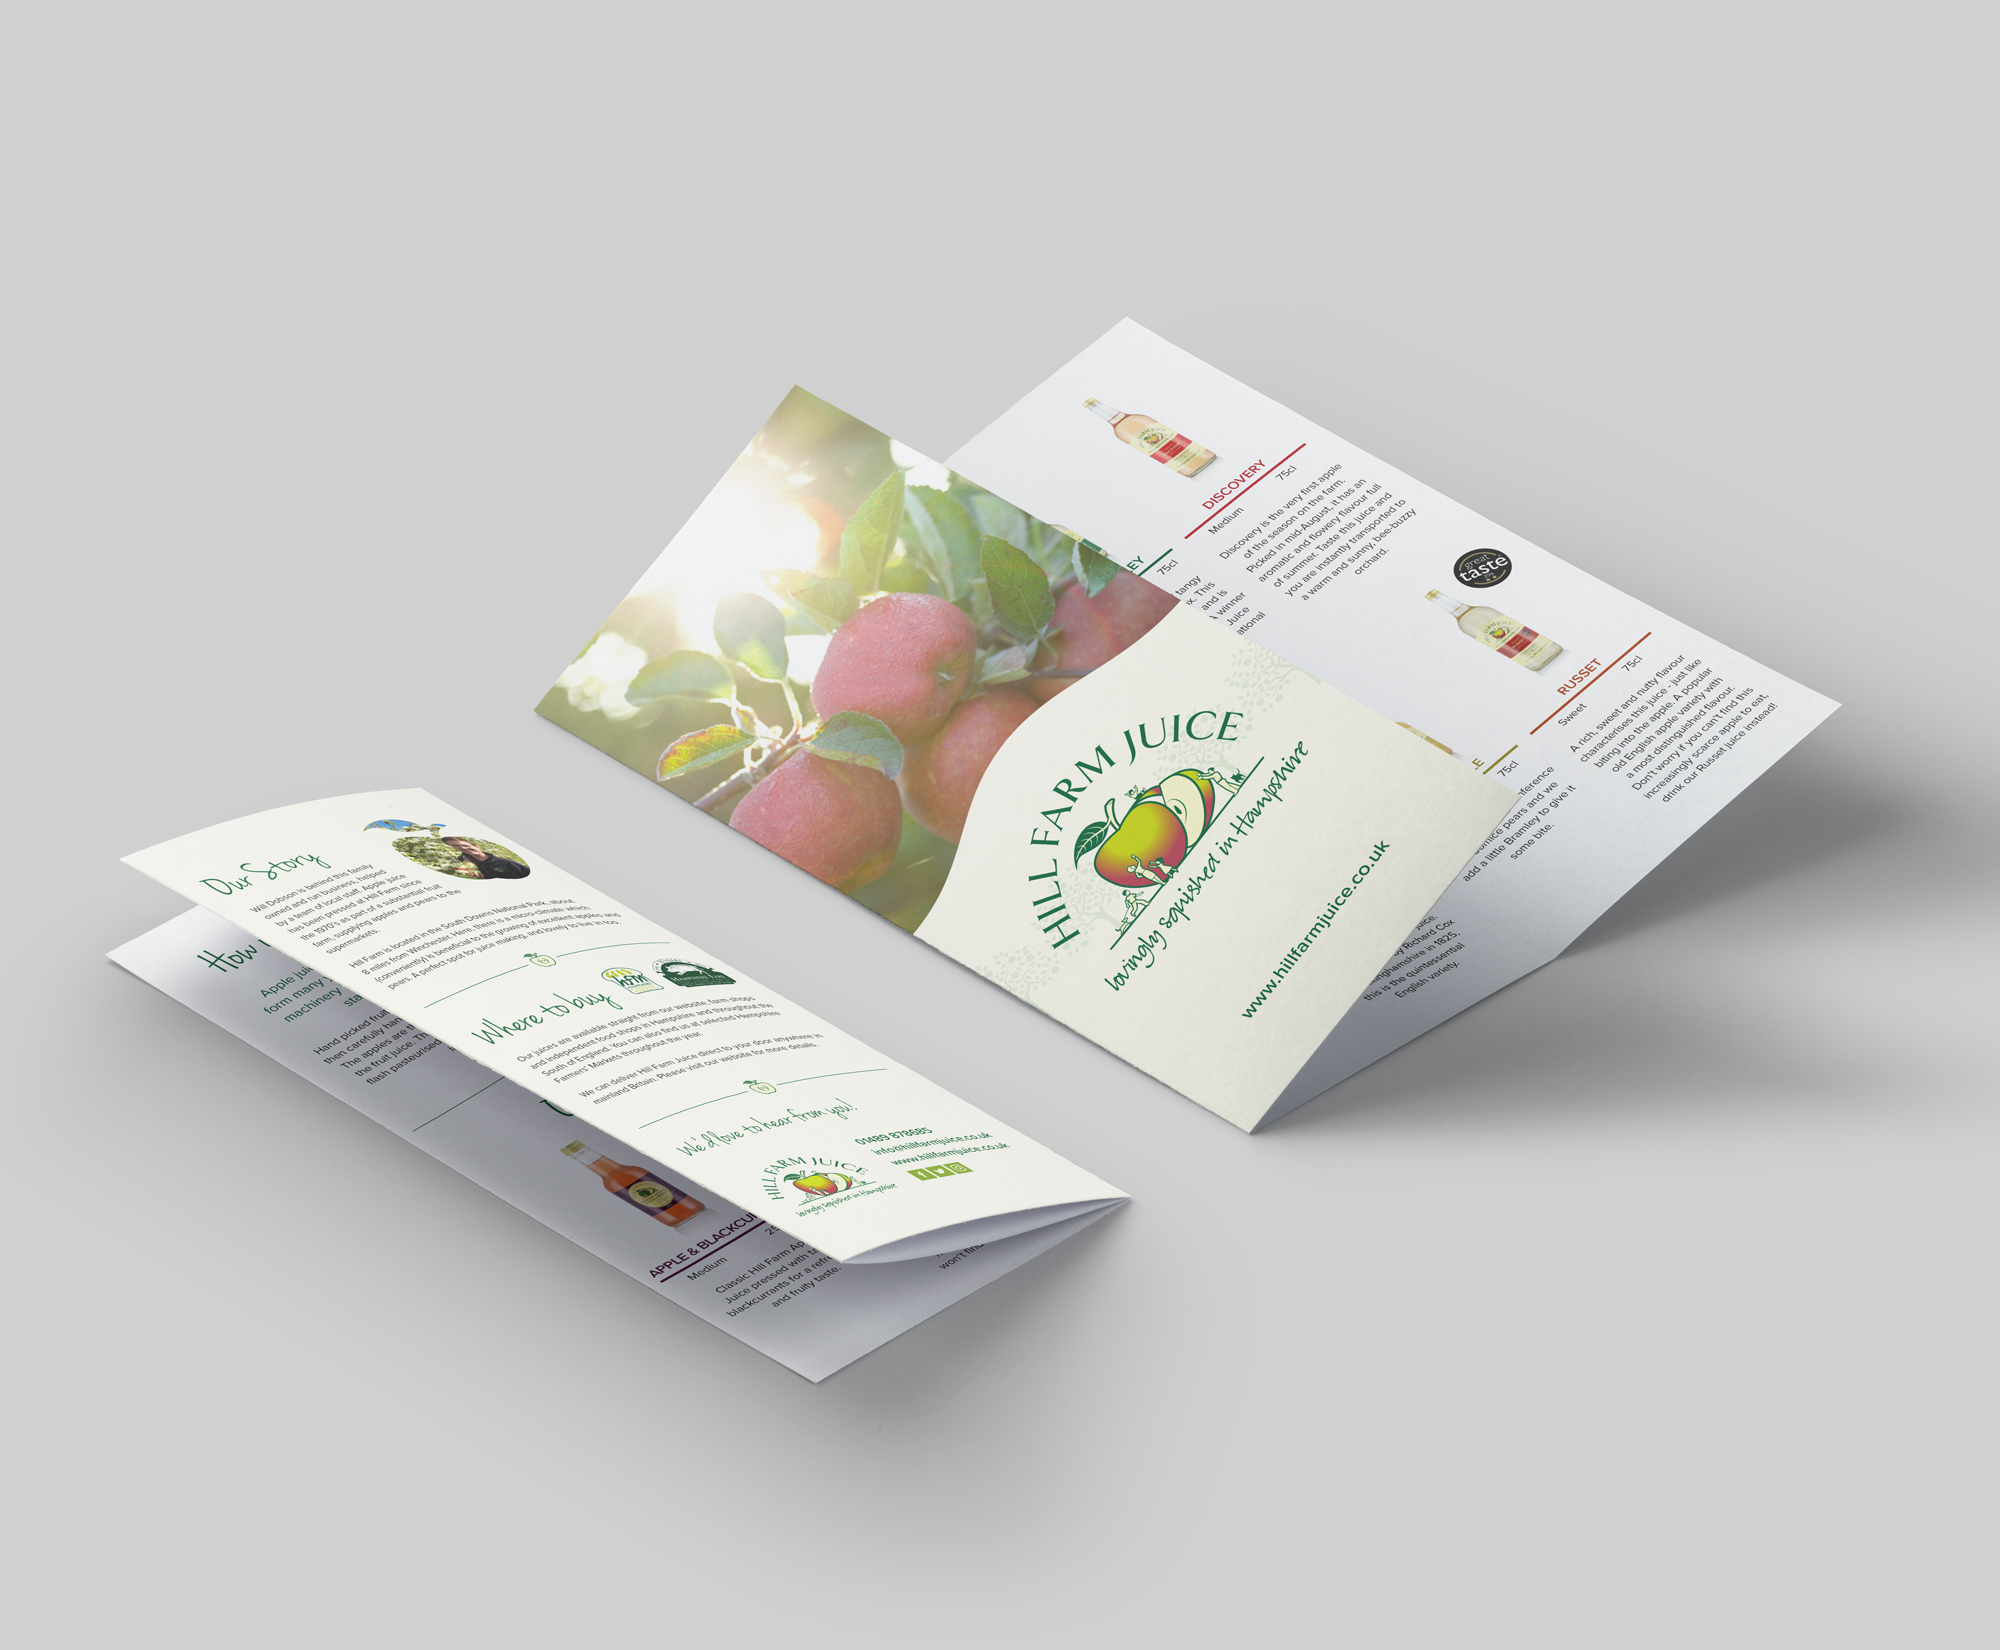 Hill Farm Juice Gatefold Leaflet